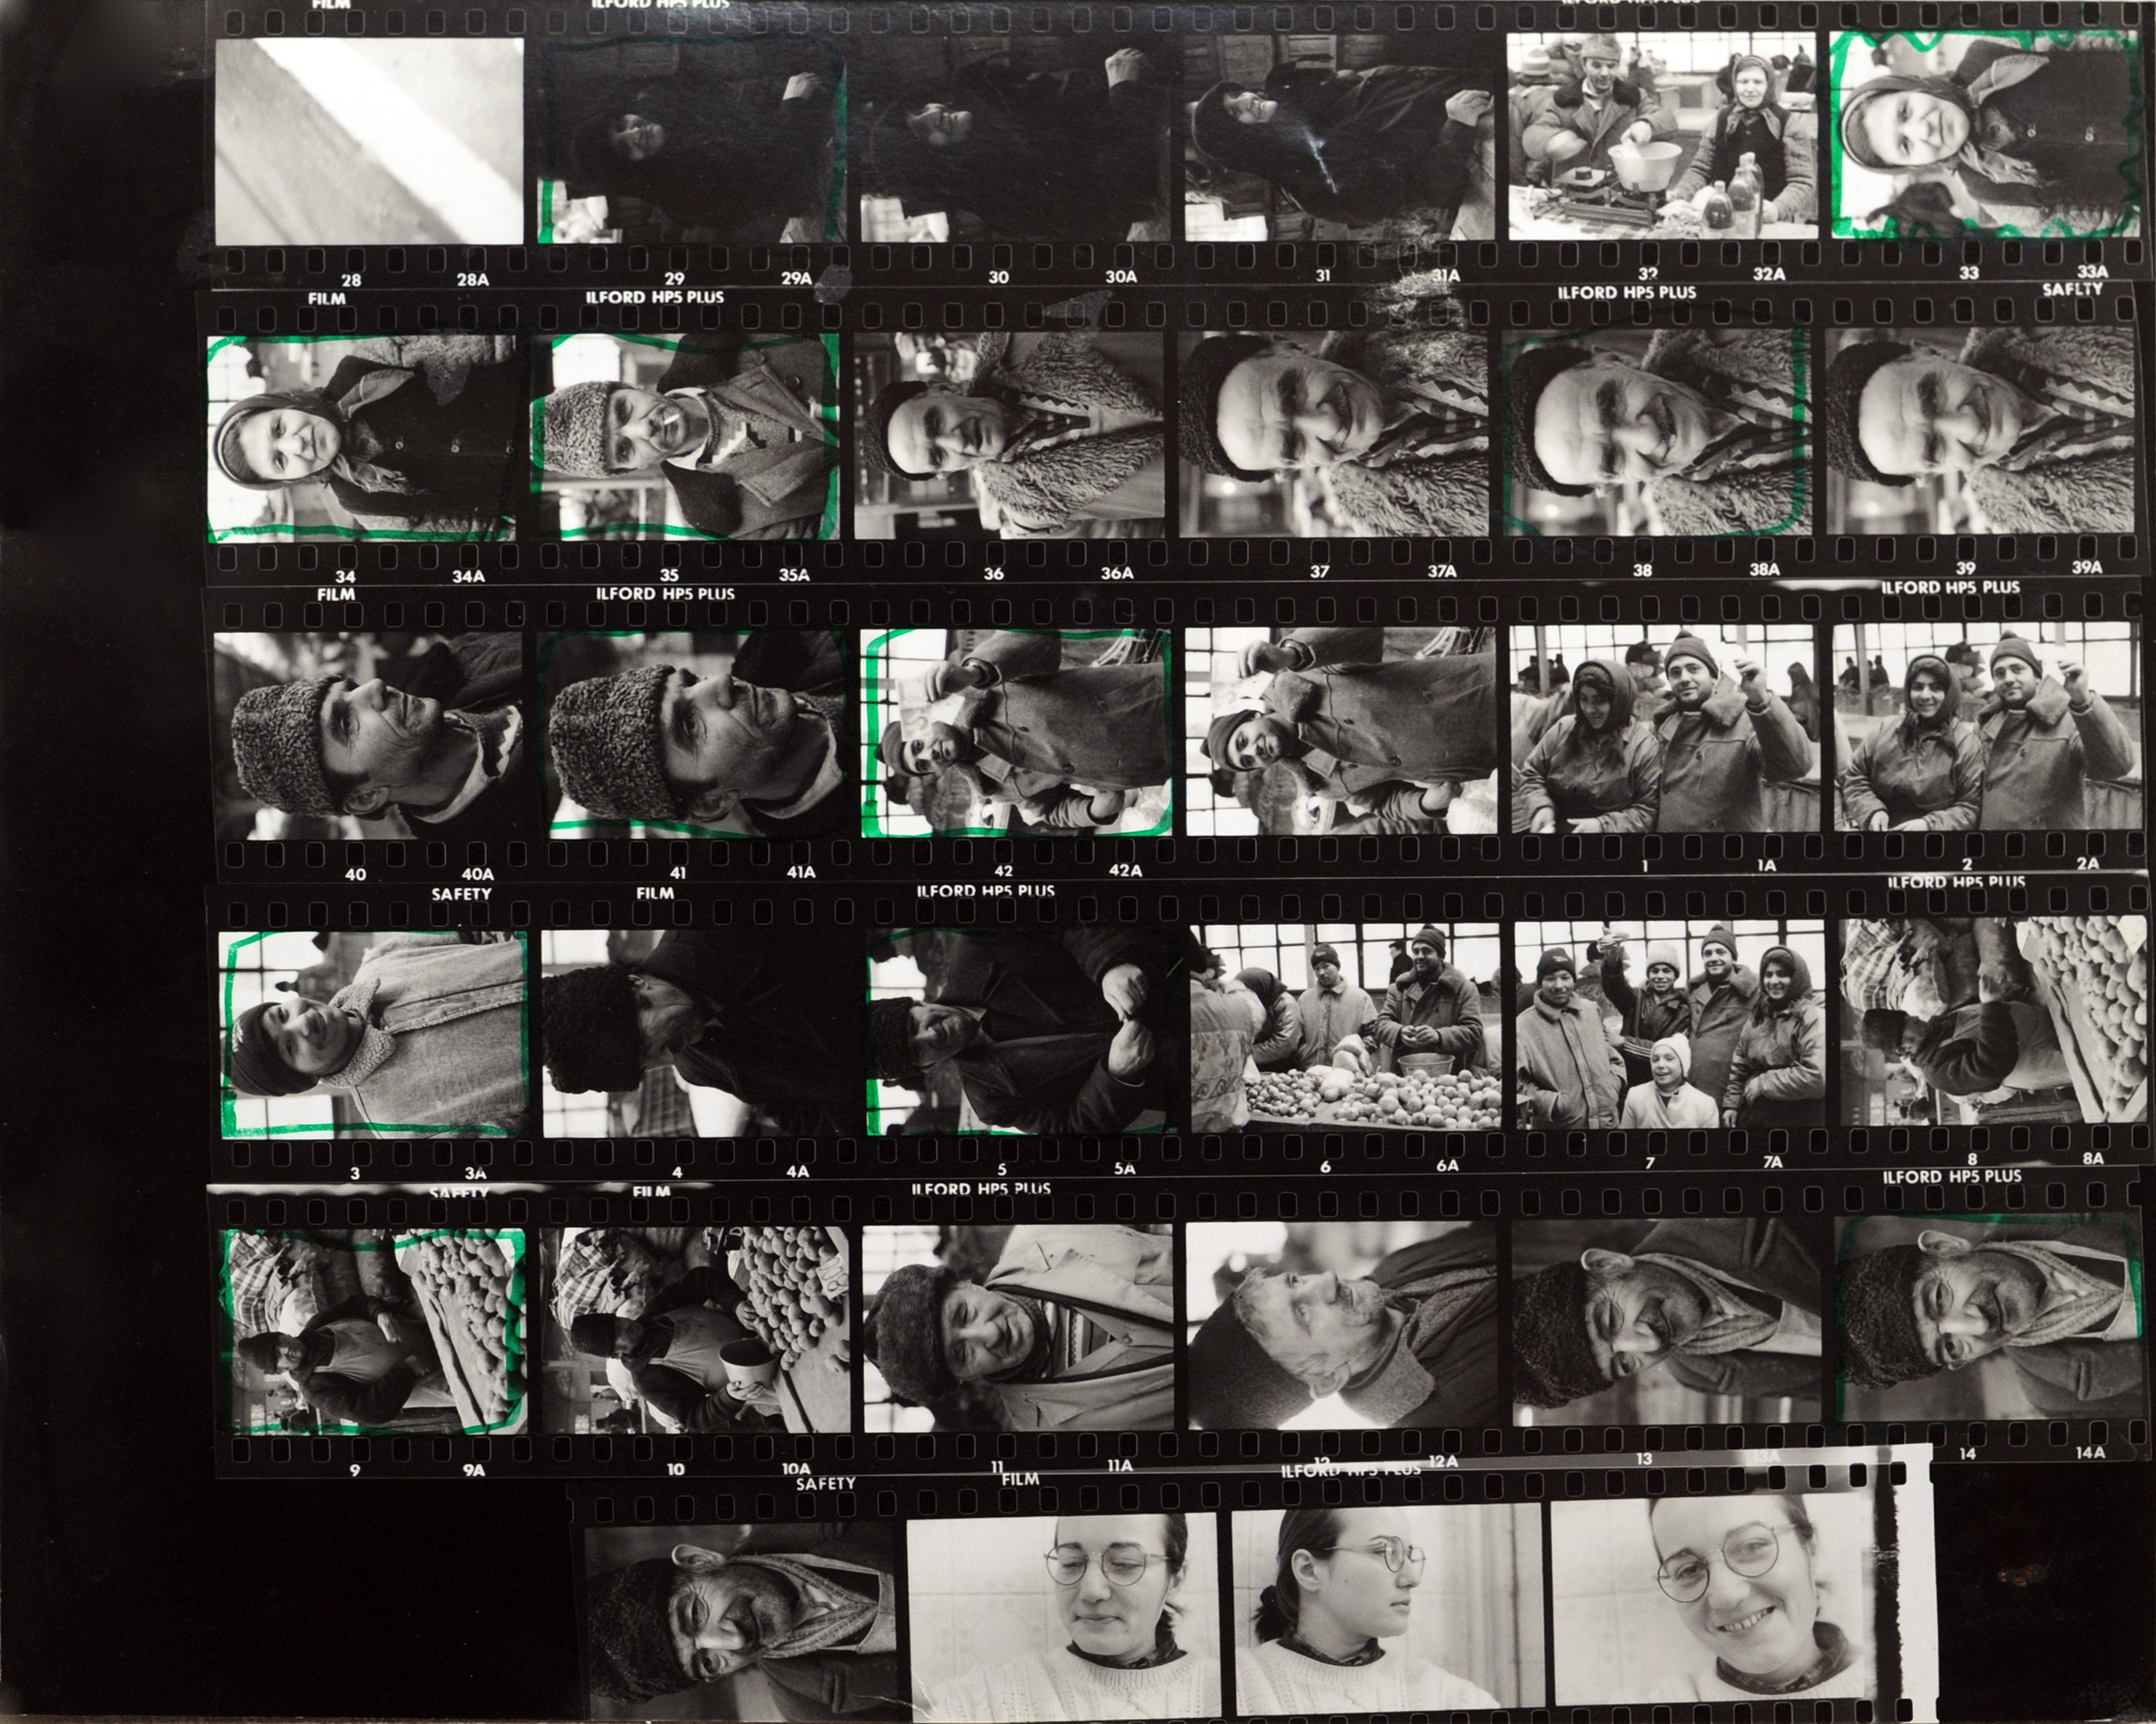 Contact sheet showing a group of photograps.